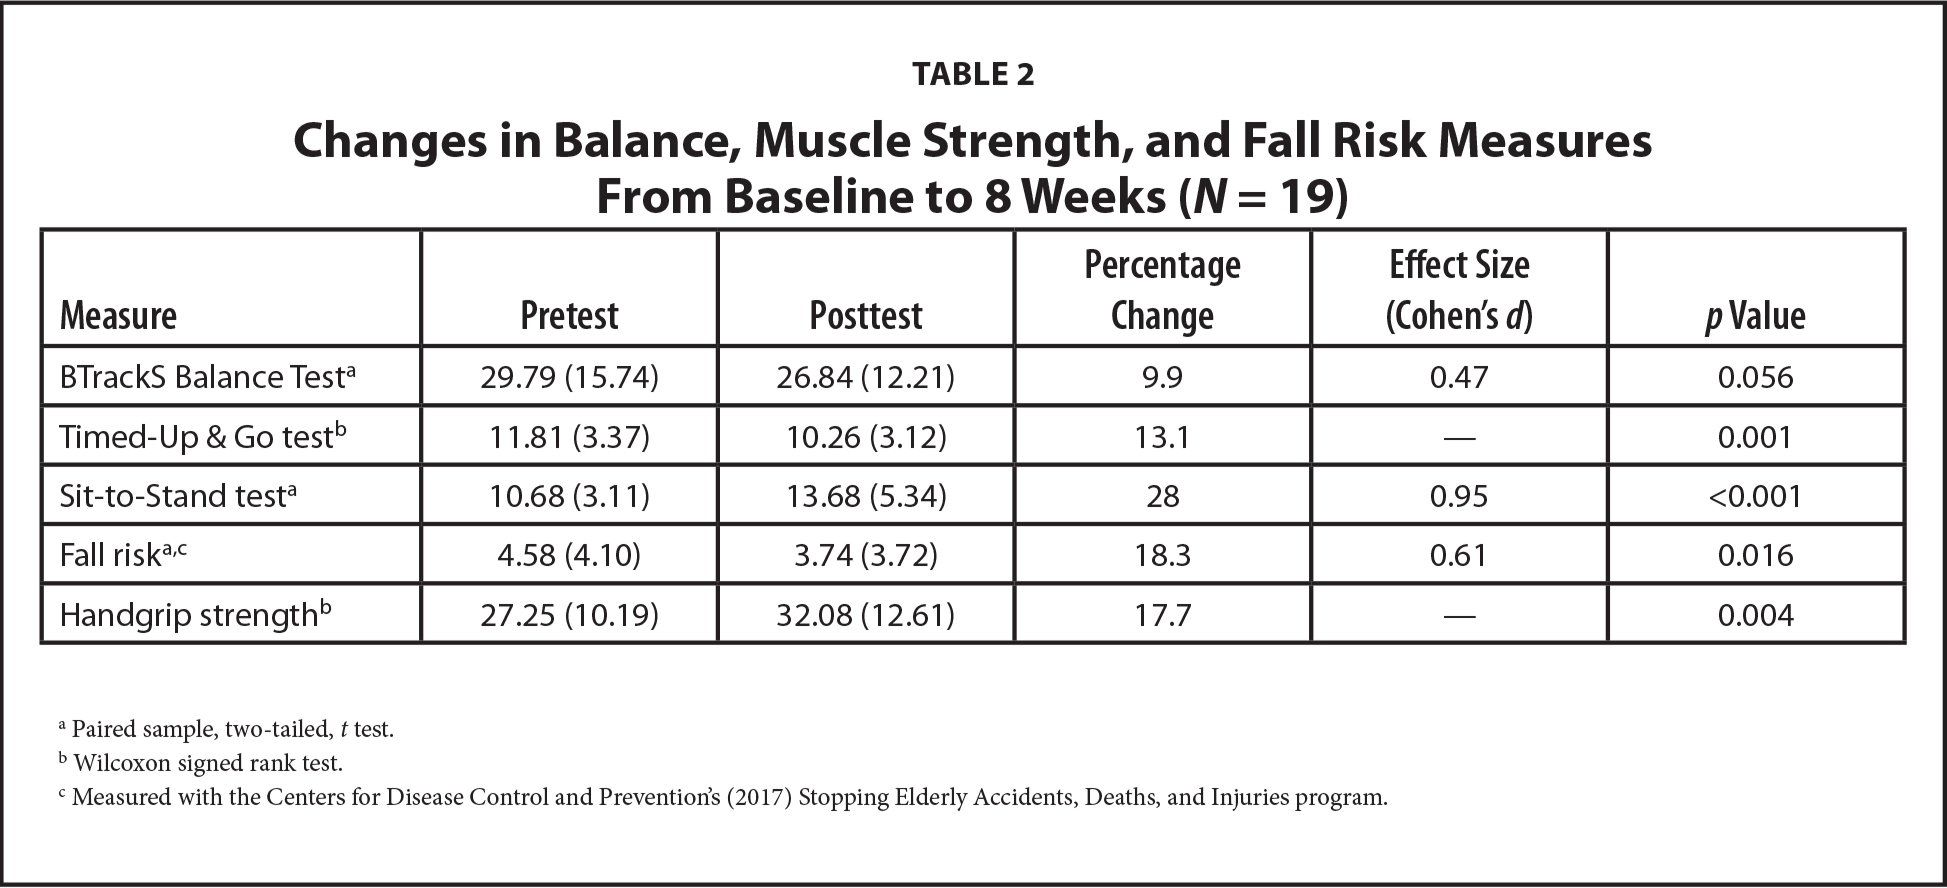 Changes in Balance, Muscle Strength, and Fall Risk Measures From Baseline to 8 Weeks (N = 19)